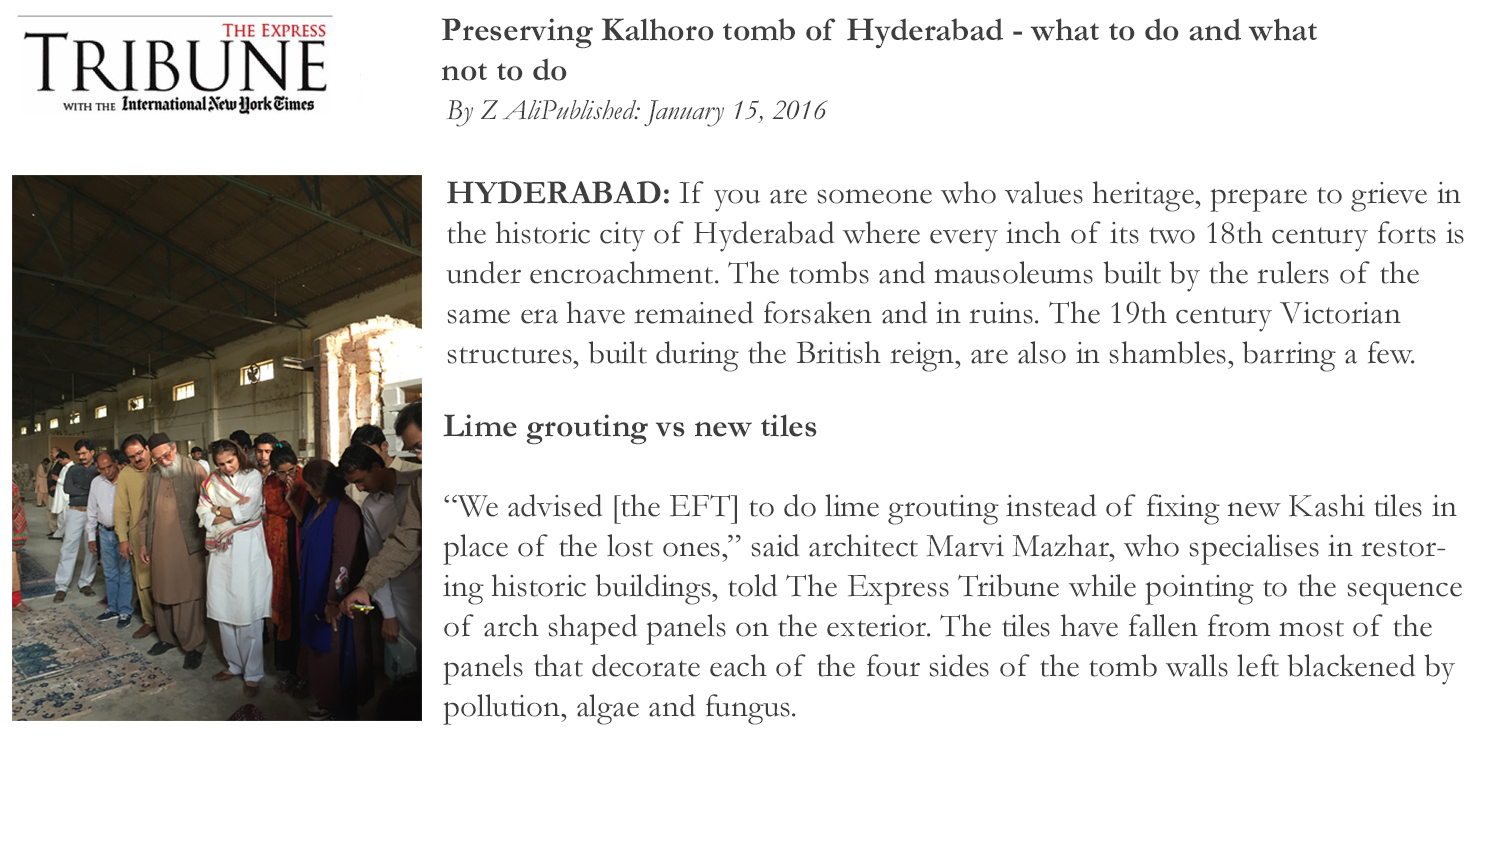 Preserving Kolhoro tomb of Hyderabad-what to do and what not to do by Z Ali. Published in Express Tribune Published on January, 15 2016